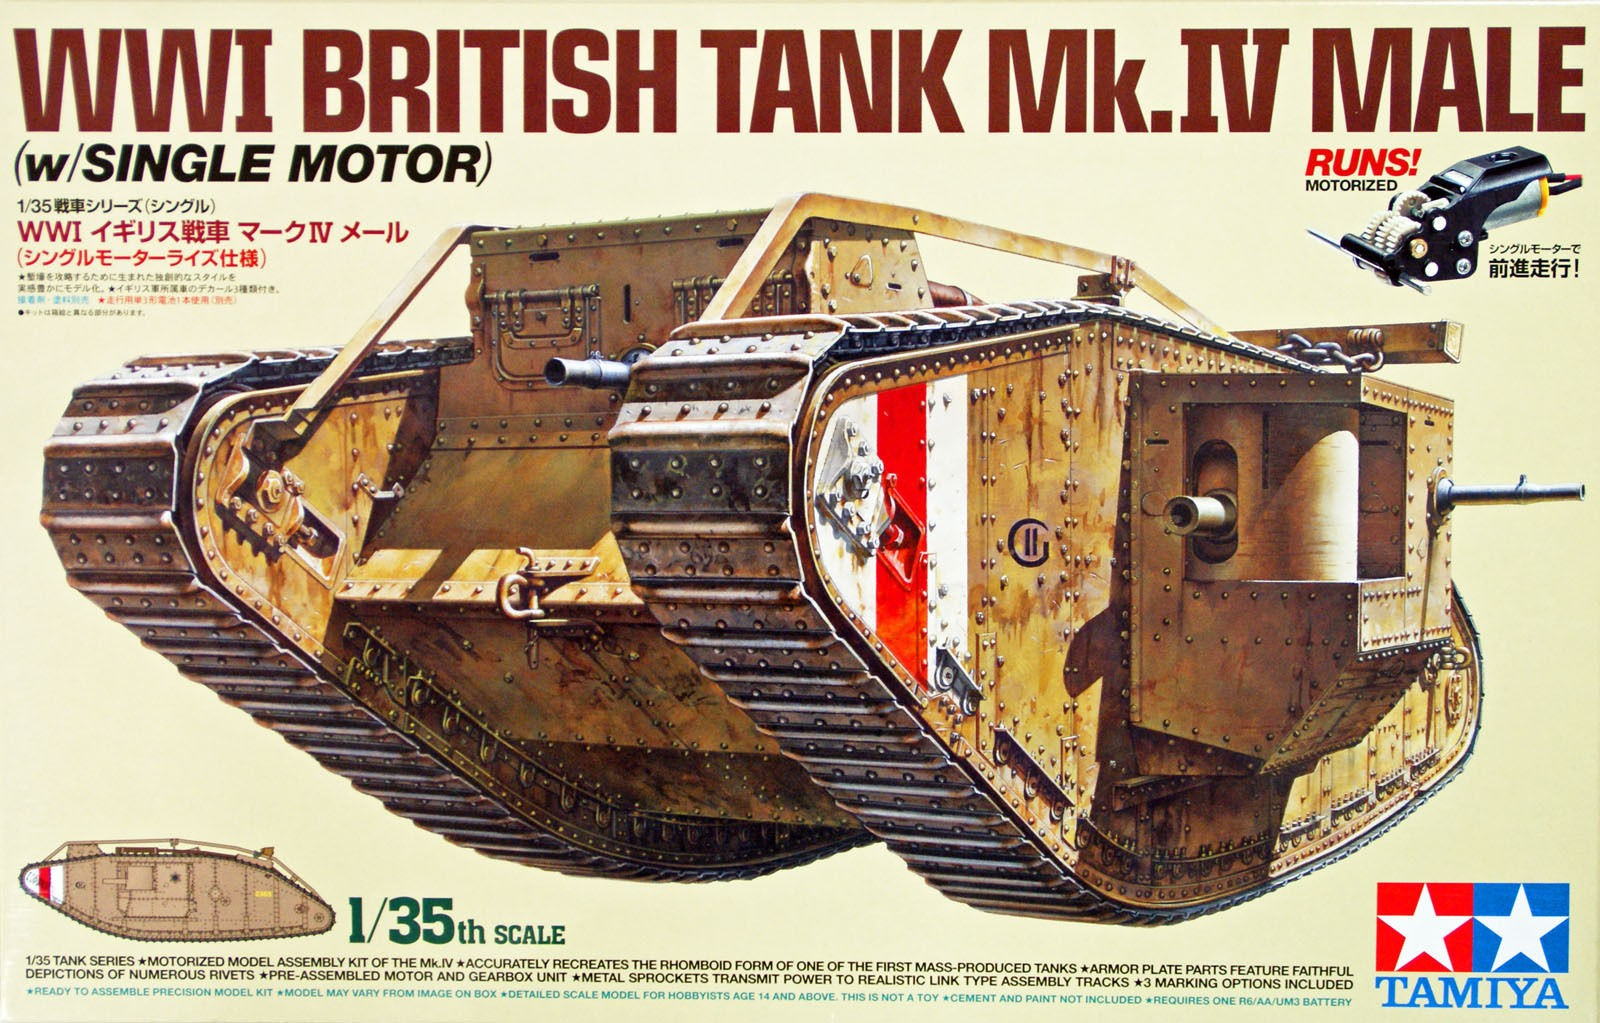 British Tank Mk.IV Male - Single Motor / British Figures - Tamiya 30057 - plastic model kit - 1/35 scale